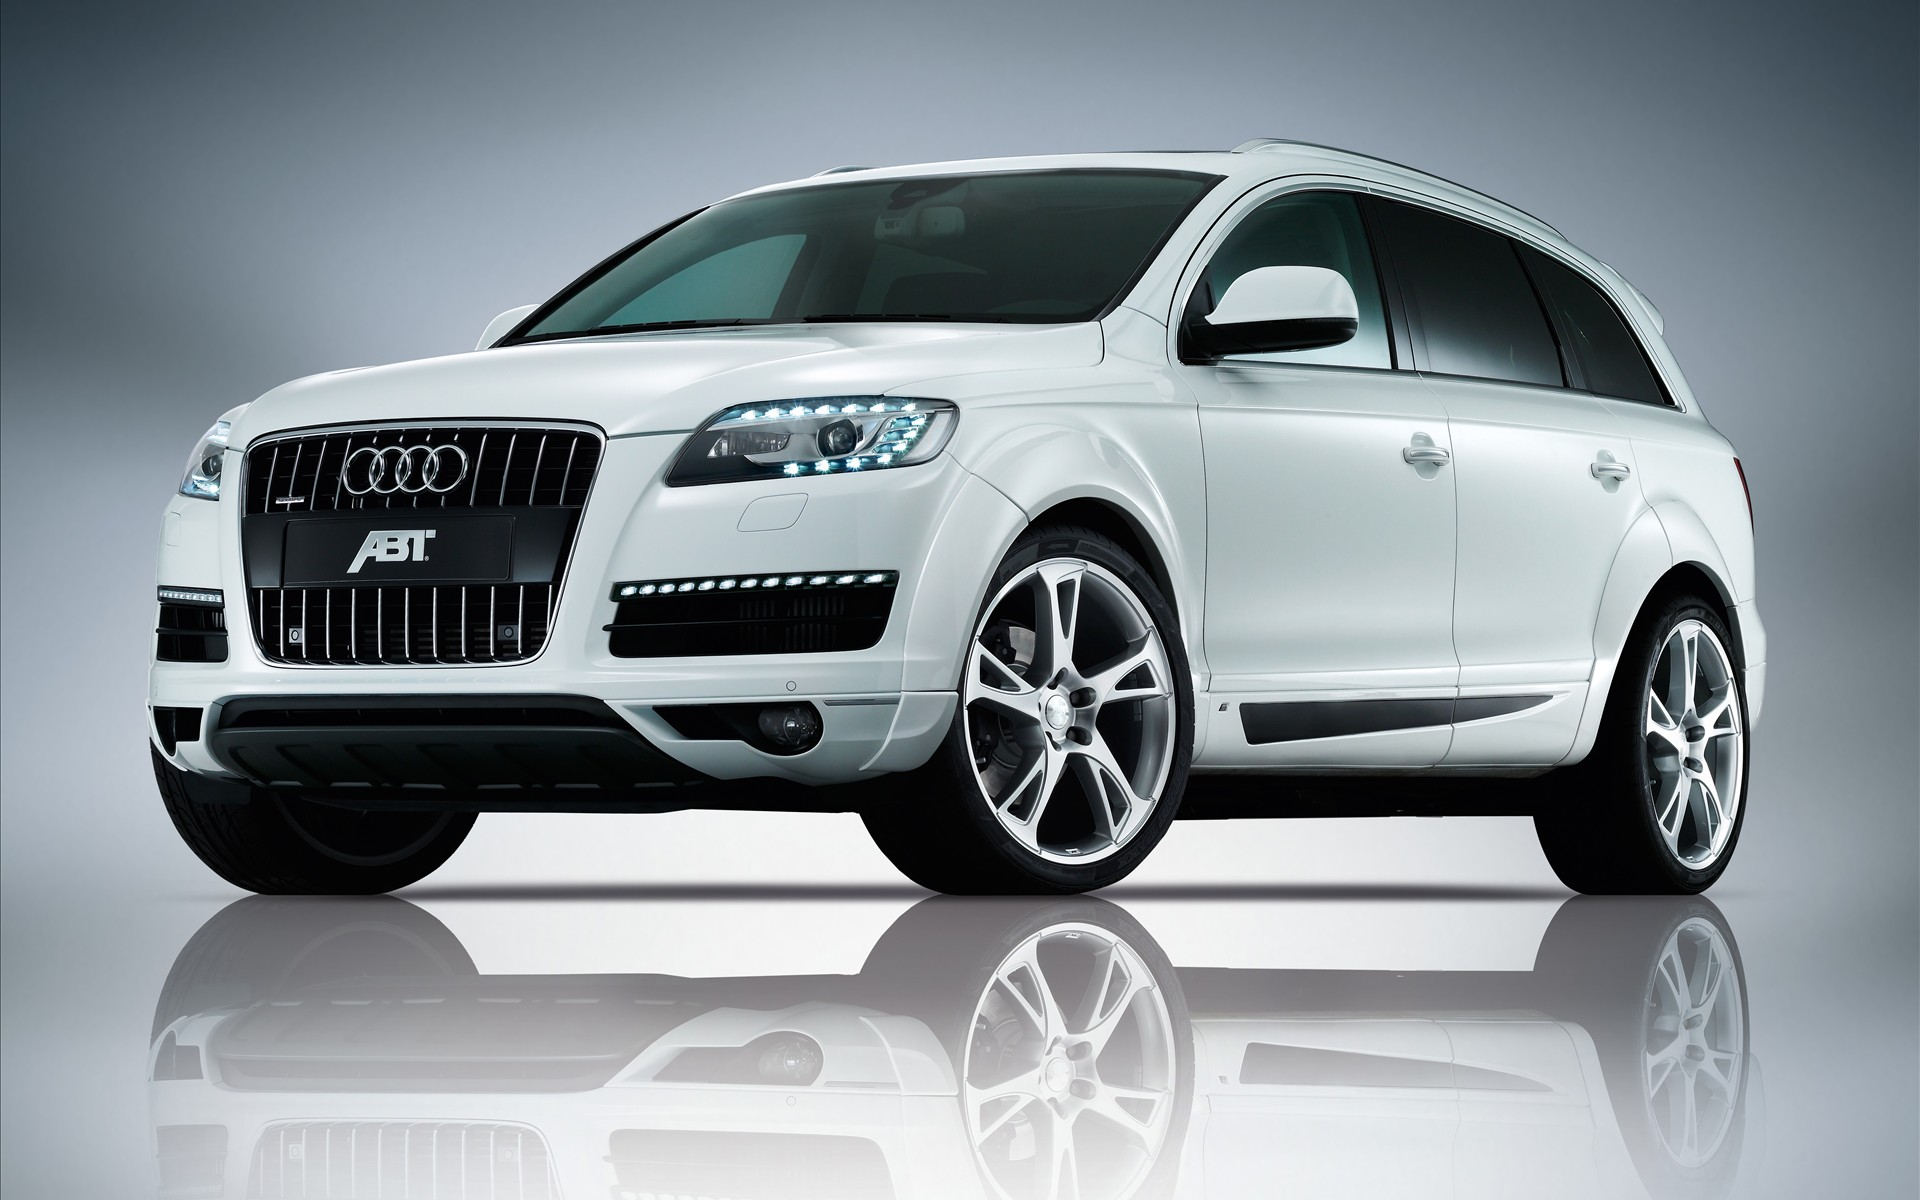 Audi Q7 Wallpapers, 1920x1200 px | Wallpapers PC Gallery